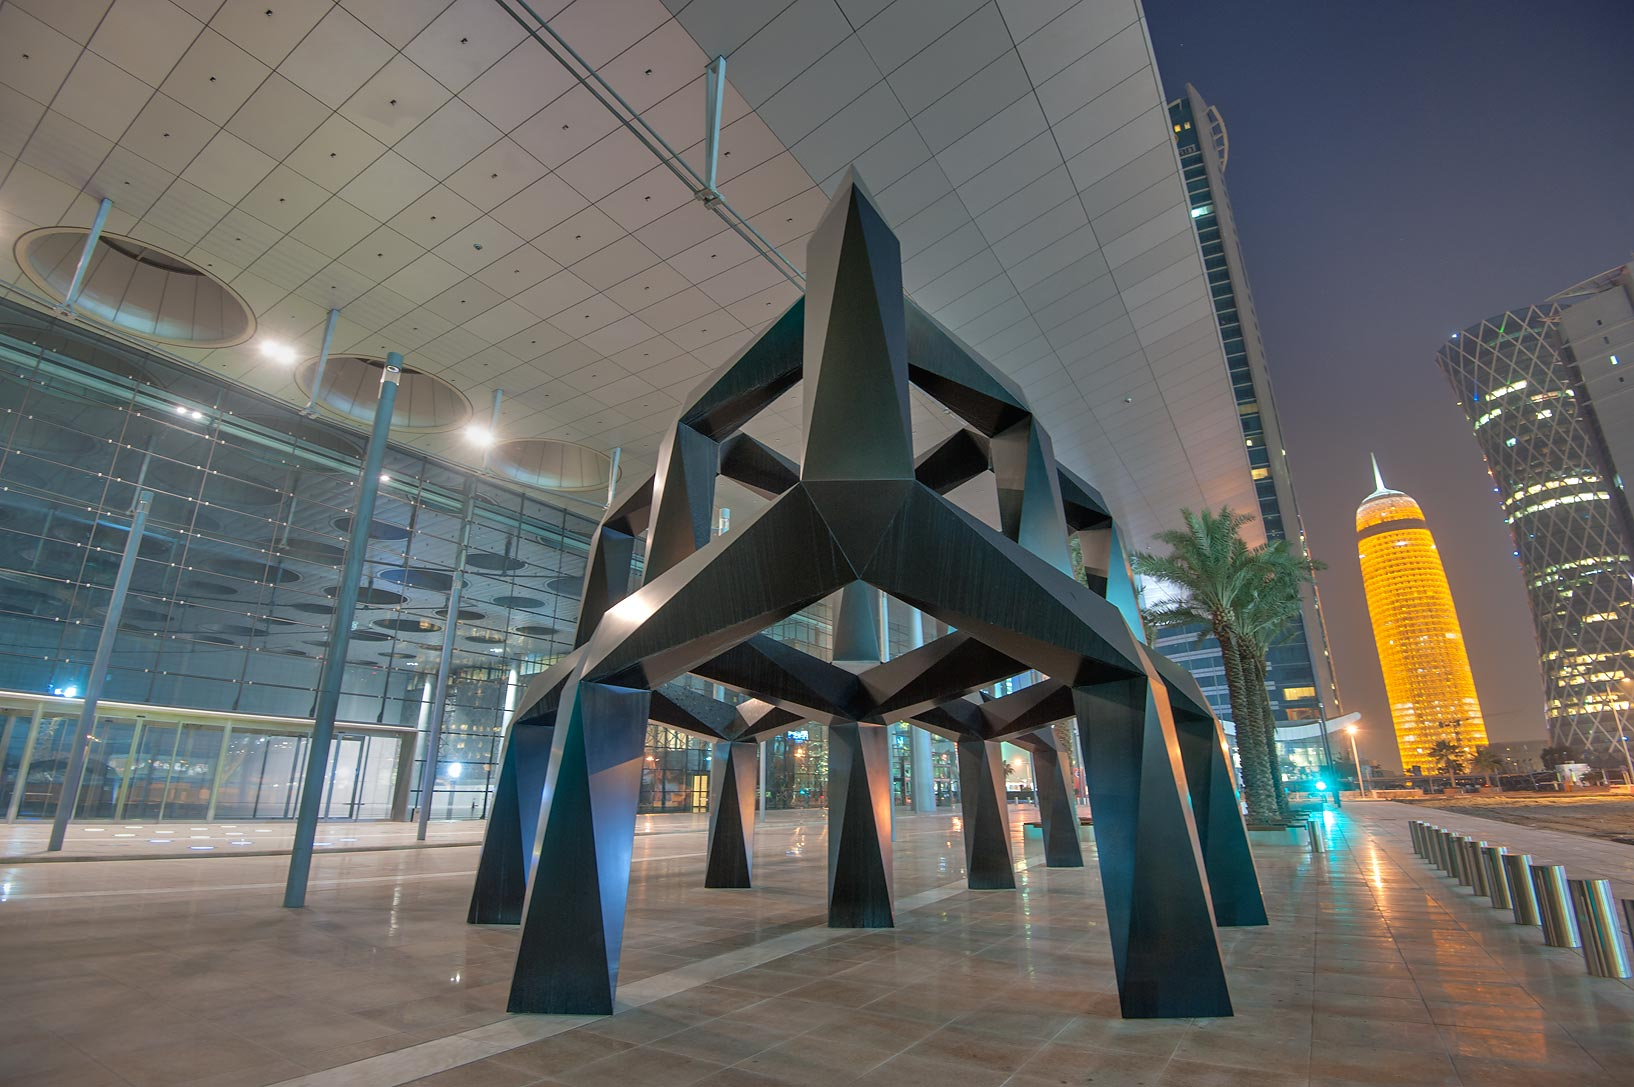 Sculpture Smoke by Tony Smith at the entrance of...near City Center mall. Doha, Qatar